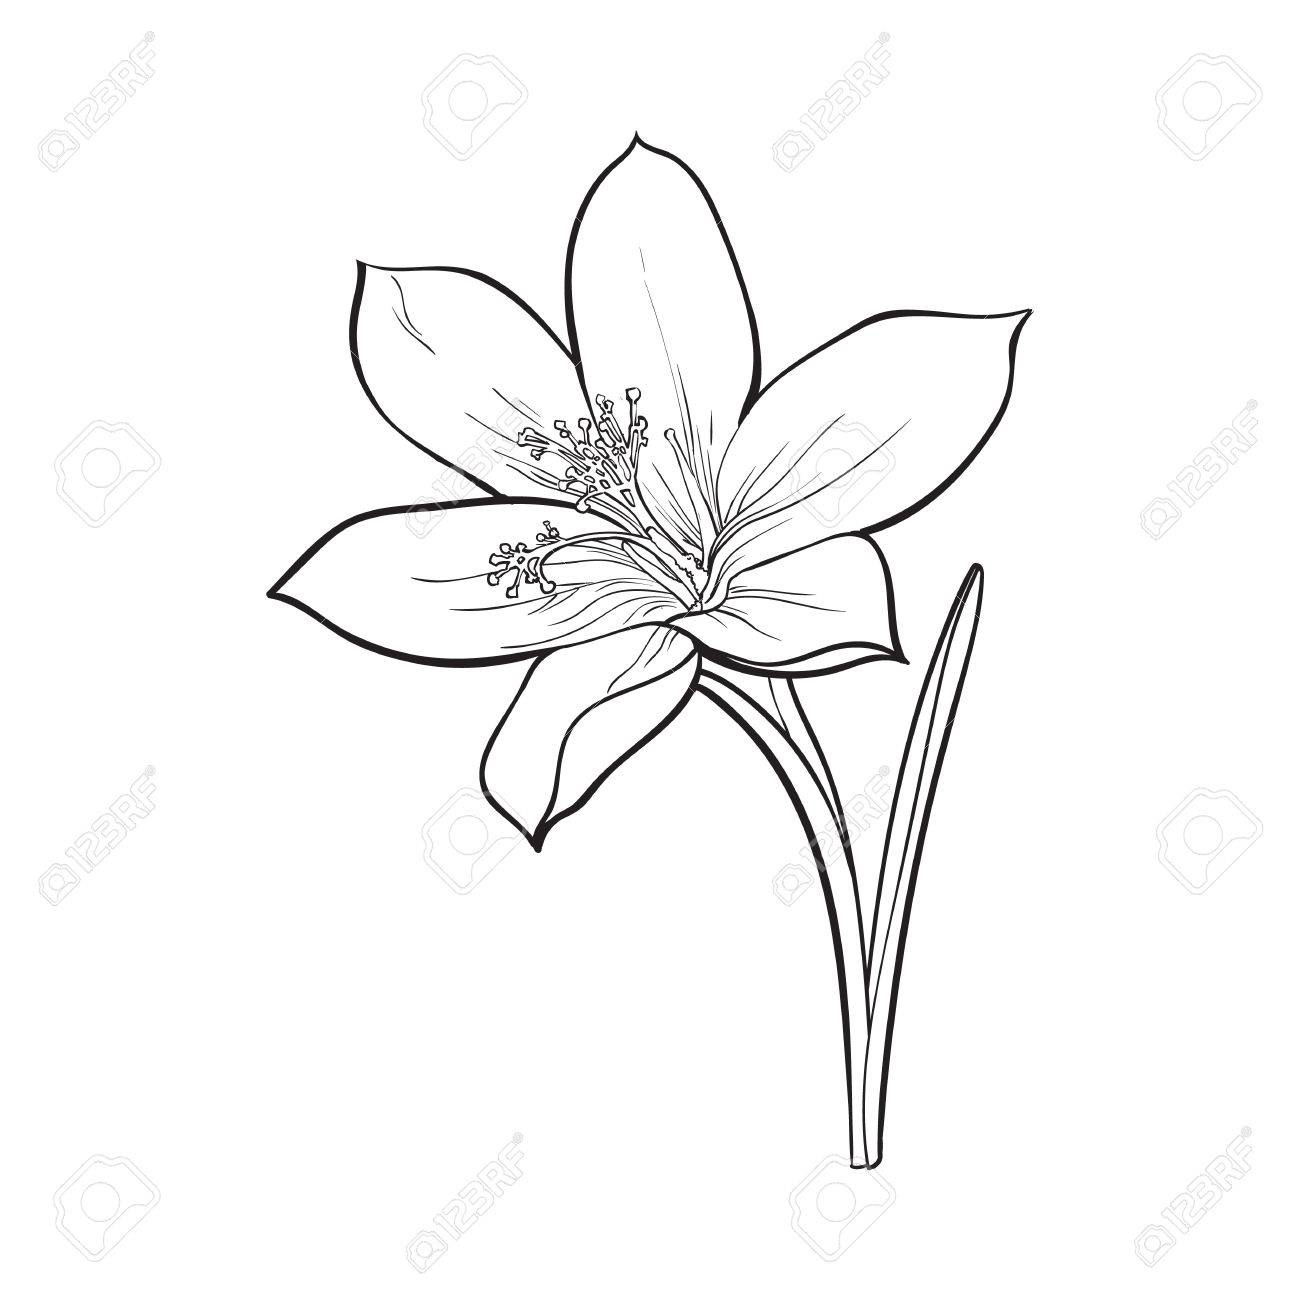 Single Flower Drawing At Getdrawings